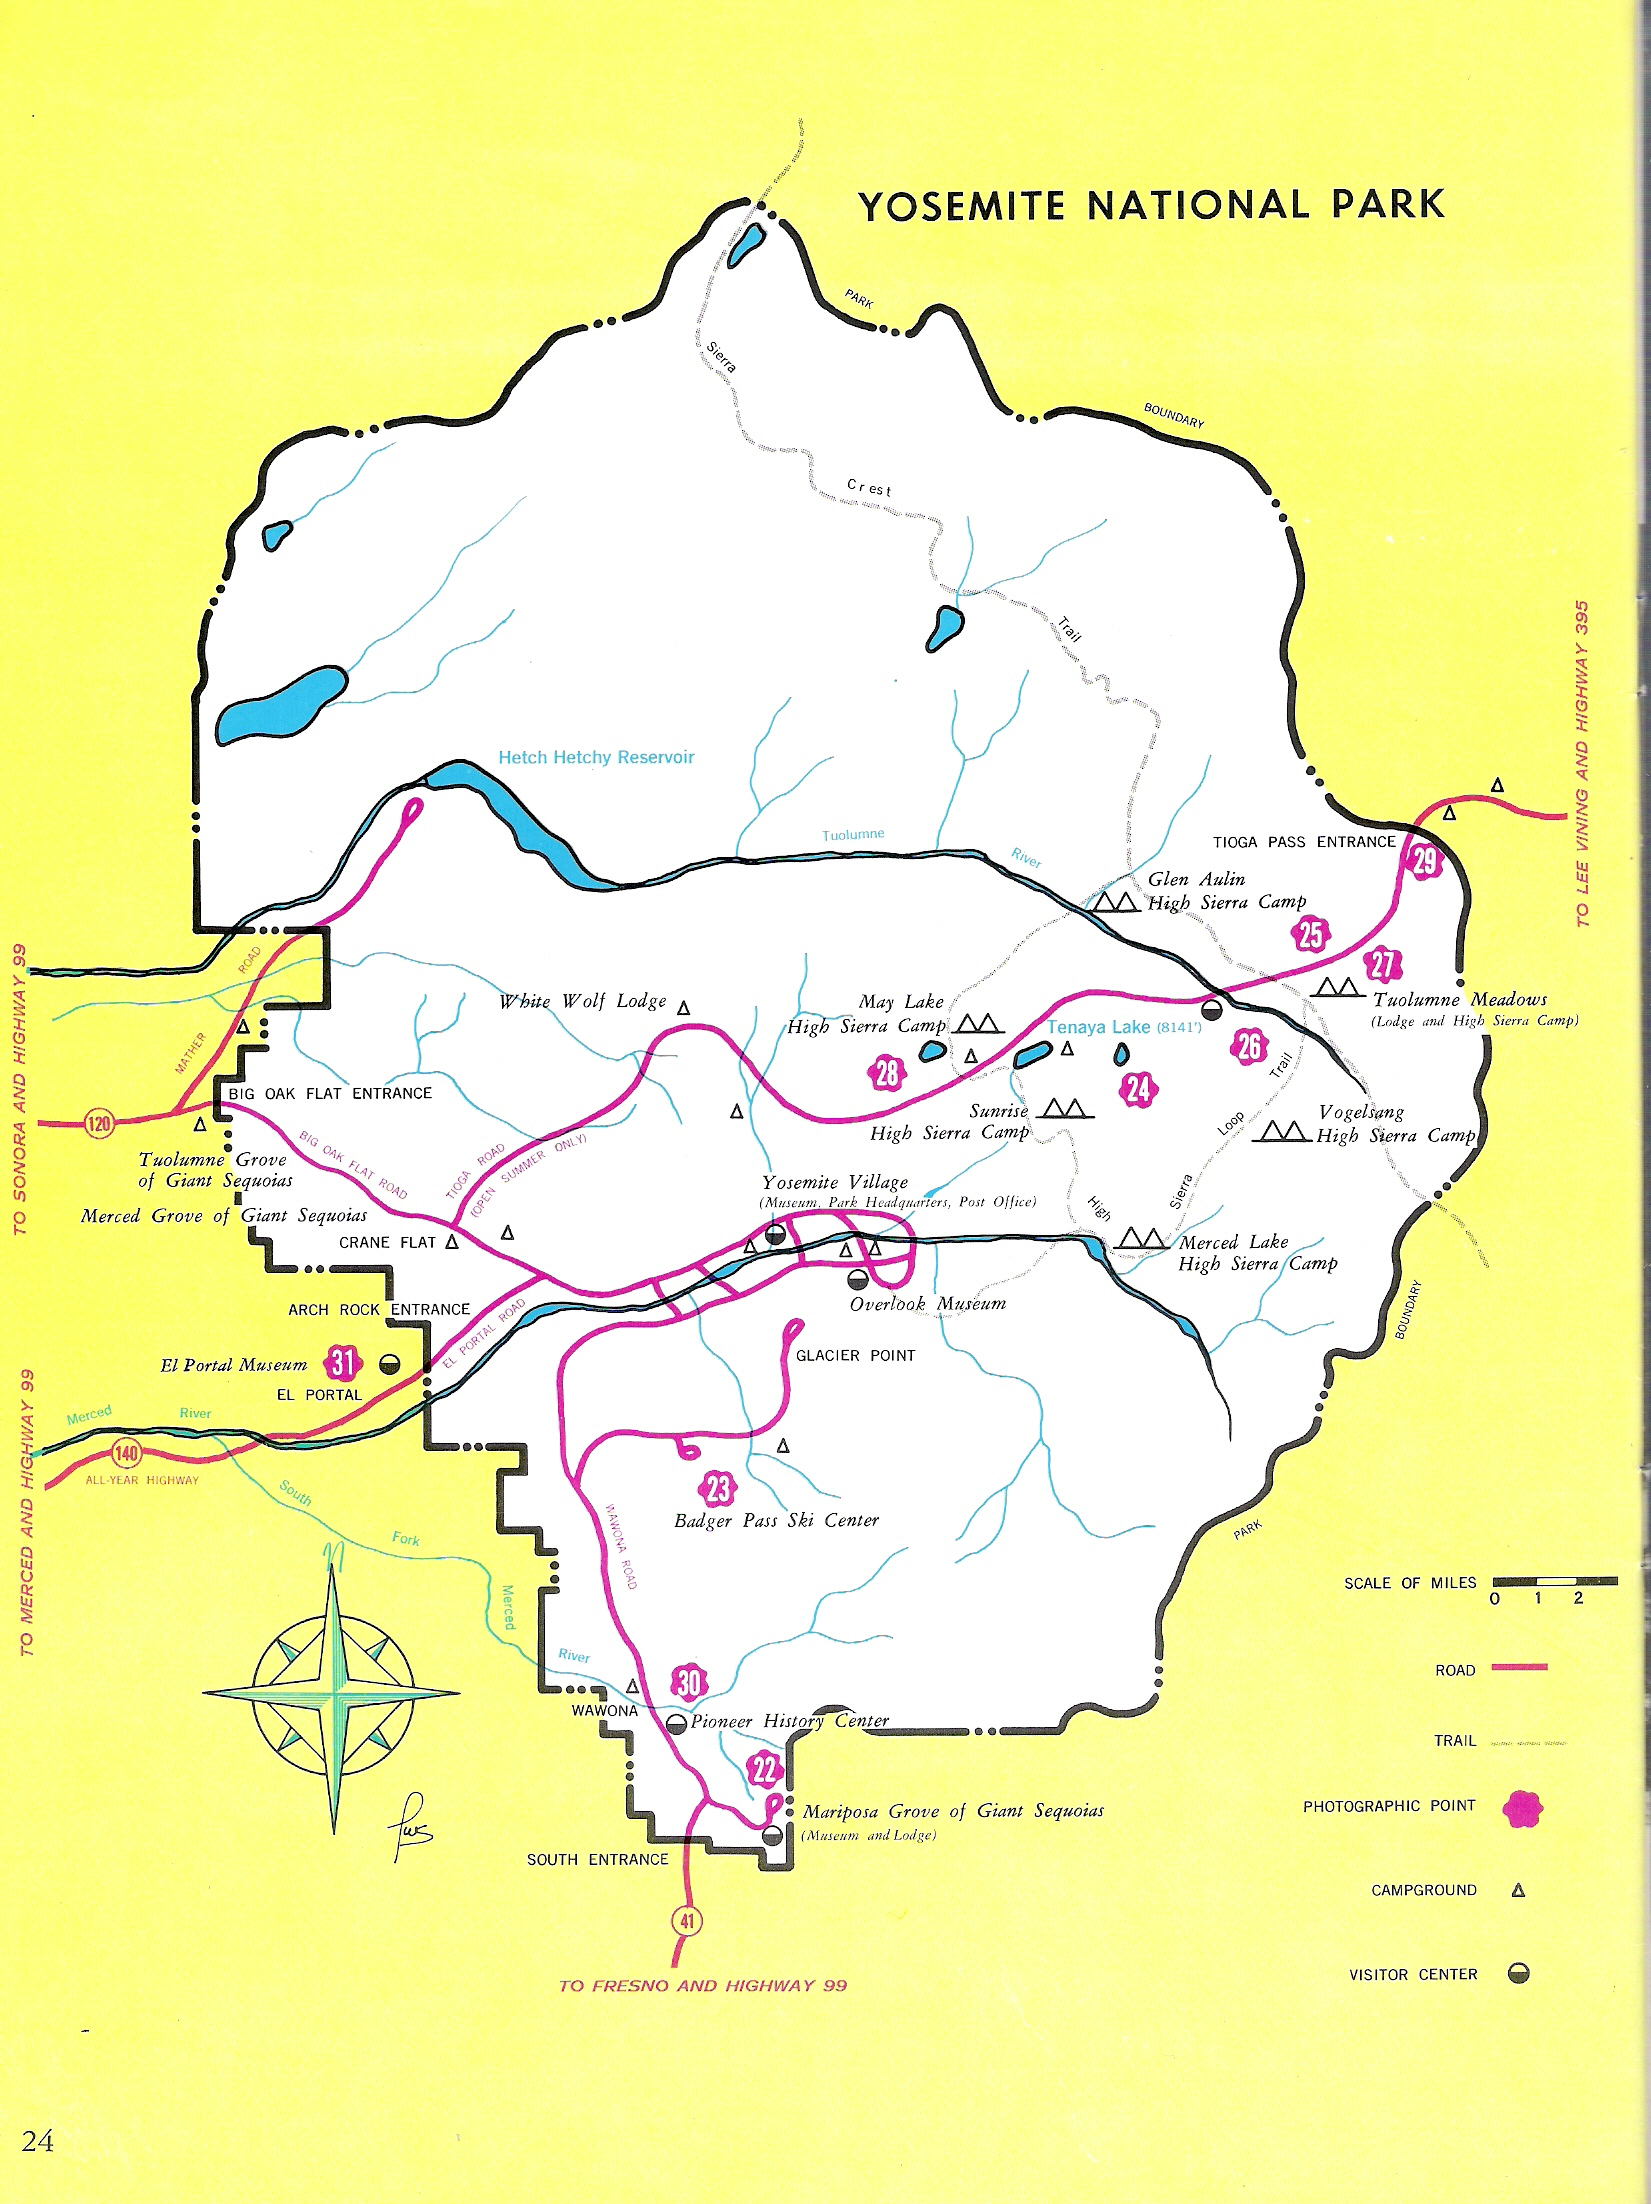 Yosemite Historic Maps (Yosemite Liry Online) on yellowstone route map, camino de santiago route map, denali route map, pacific crest trail route map, grand canyon route map, london tube route map, smith rock route map, mt whitney route map, tour du mont blanc route map,